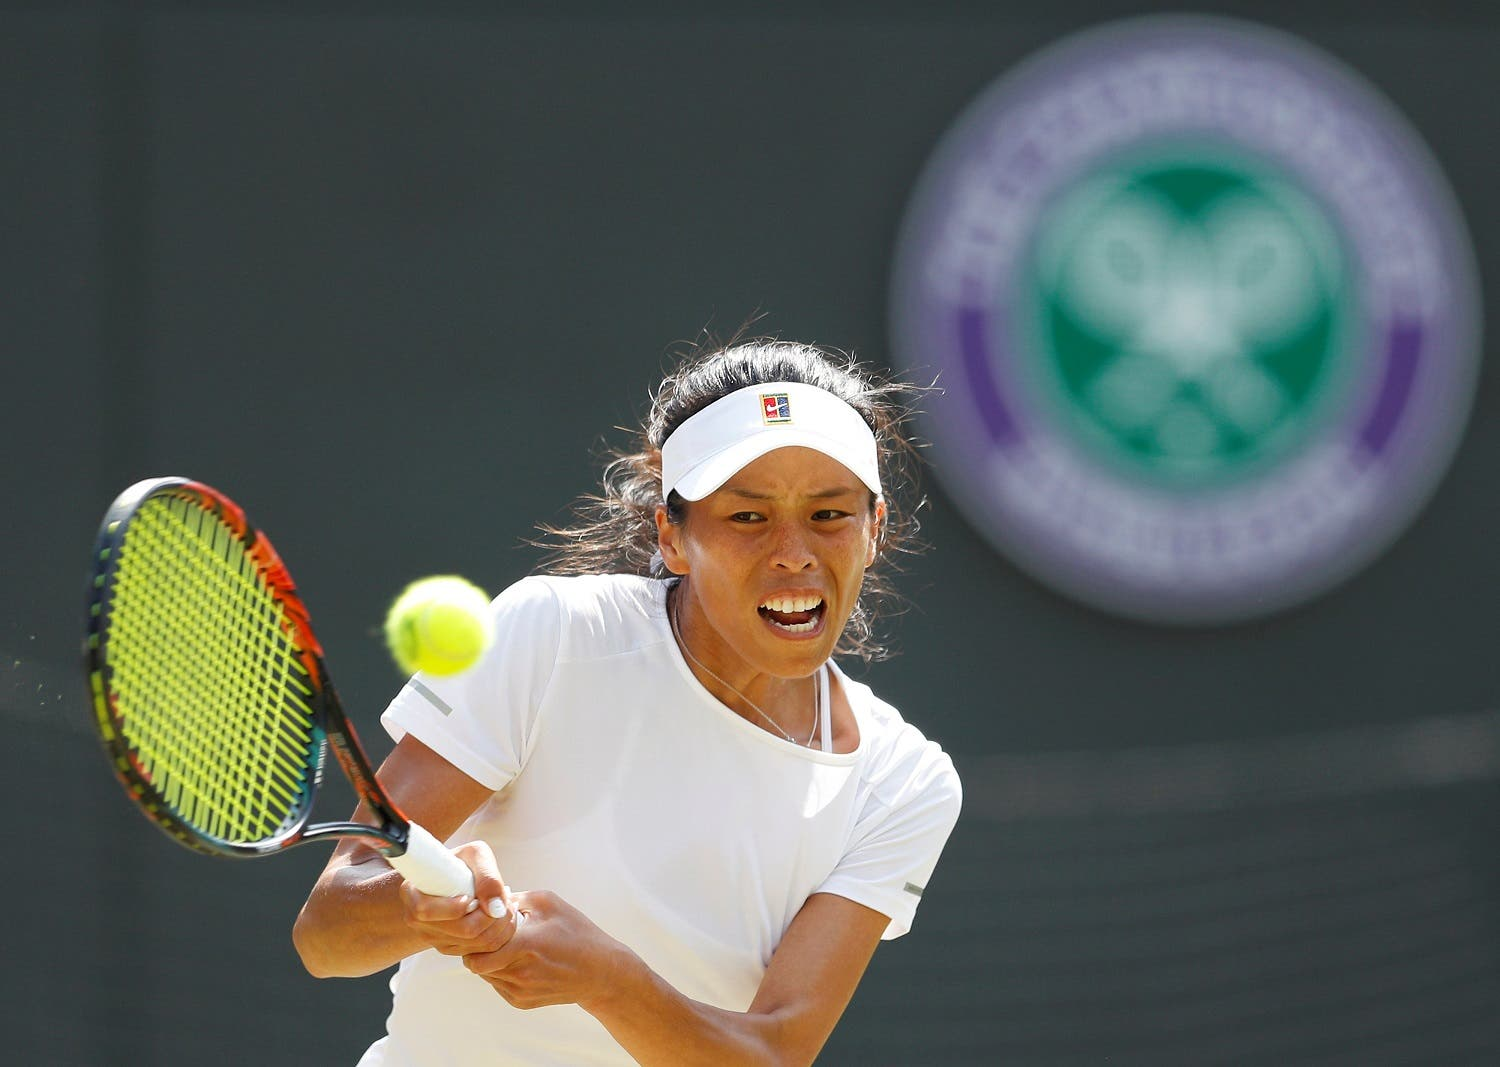 Taiwan's Su-Wei Hsieh in action during the third round match against Romania's Simona Halep. (Reuters)